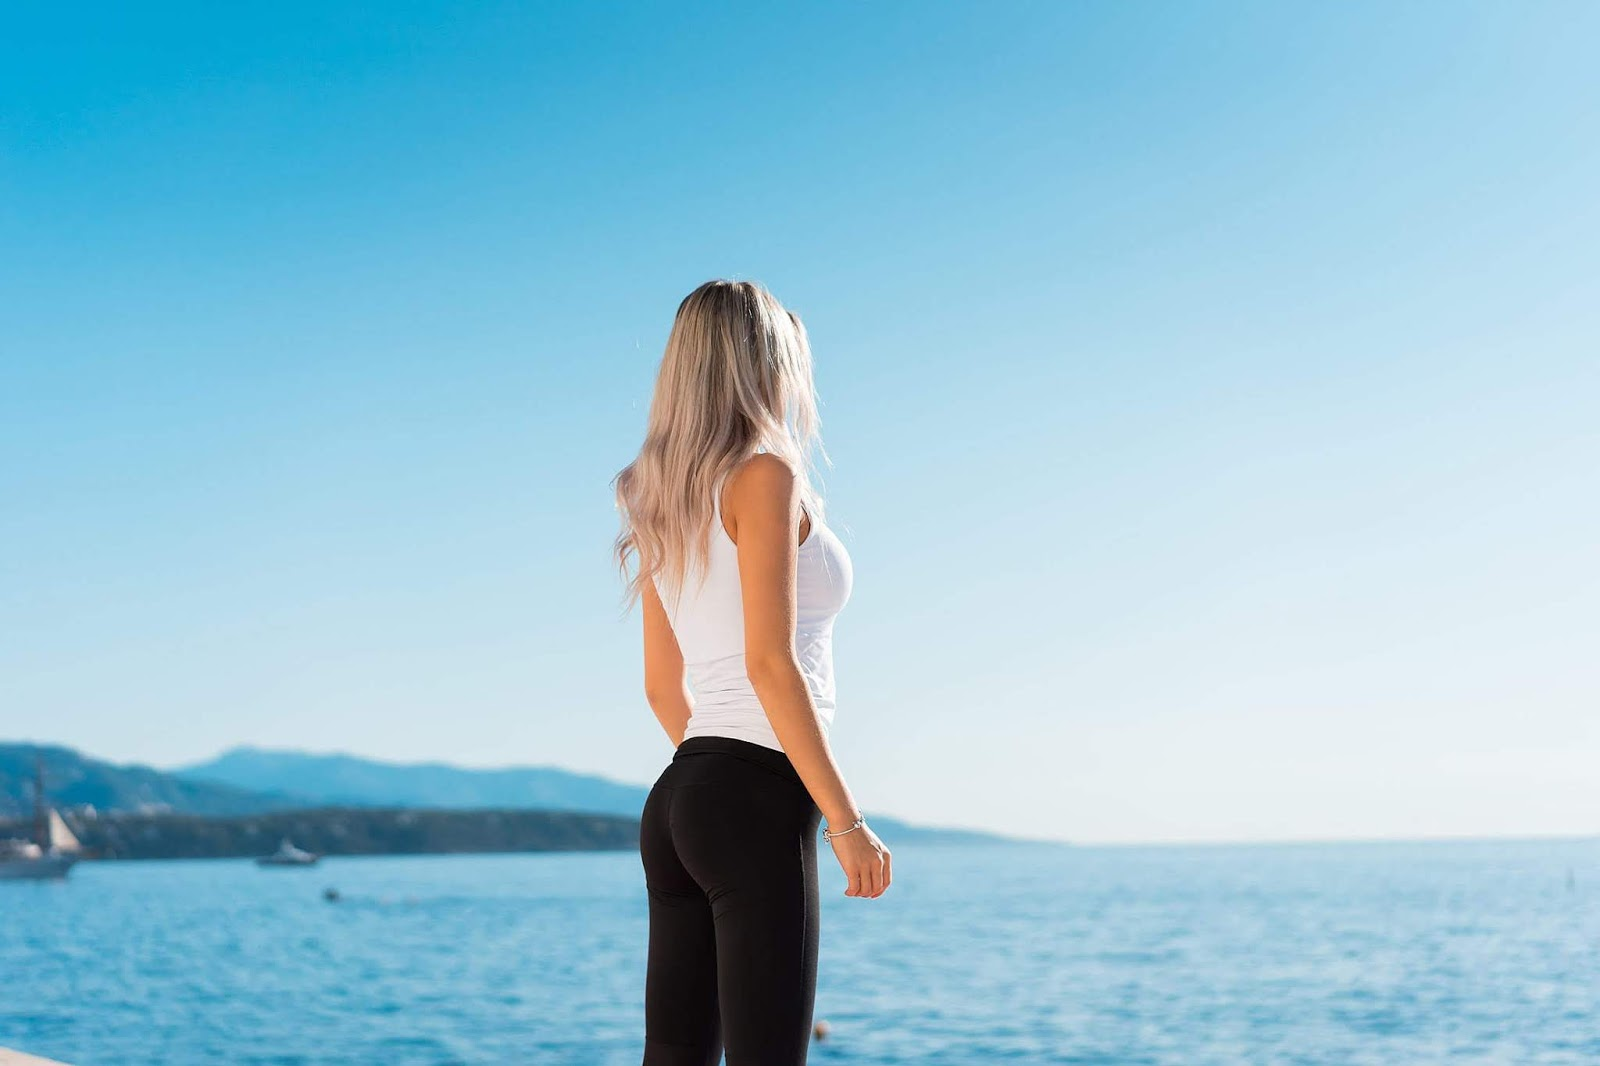 donna in leggings e top che guarda verso il mare all'orizzonte